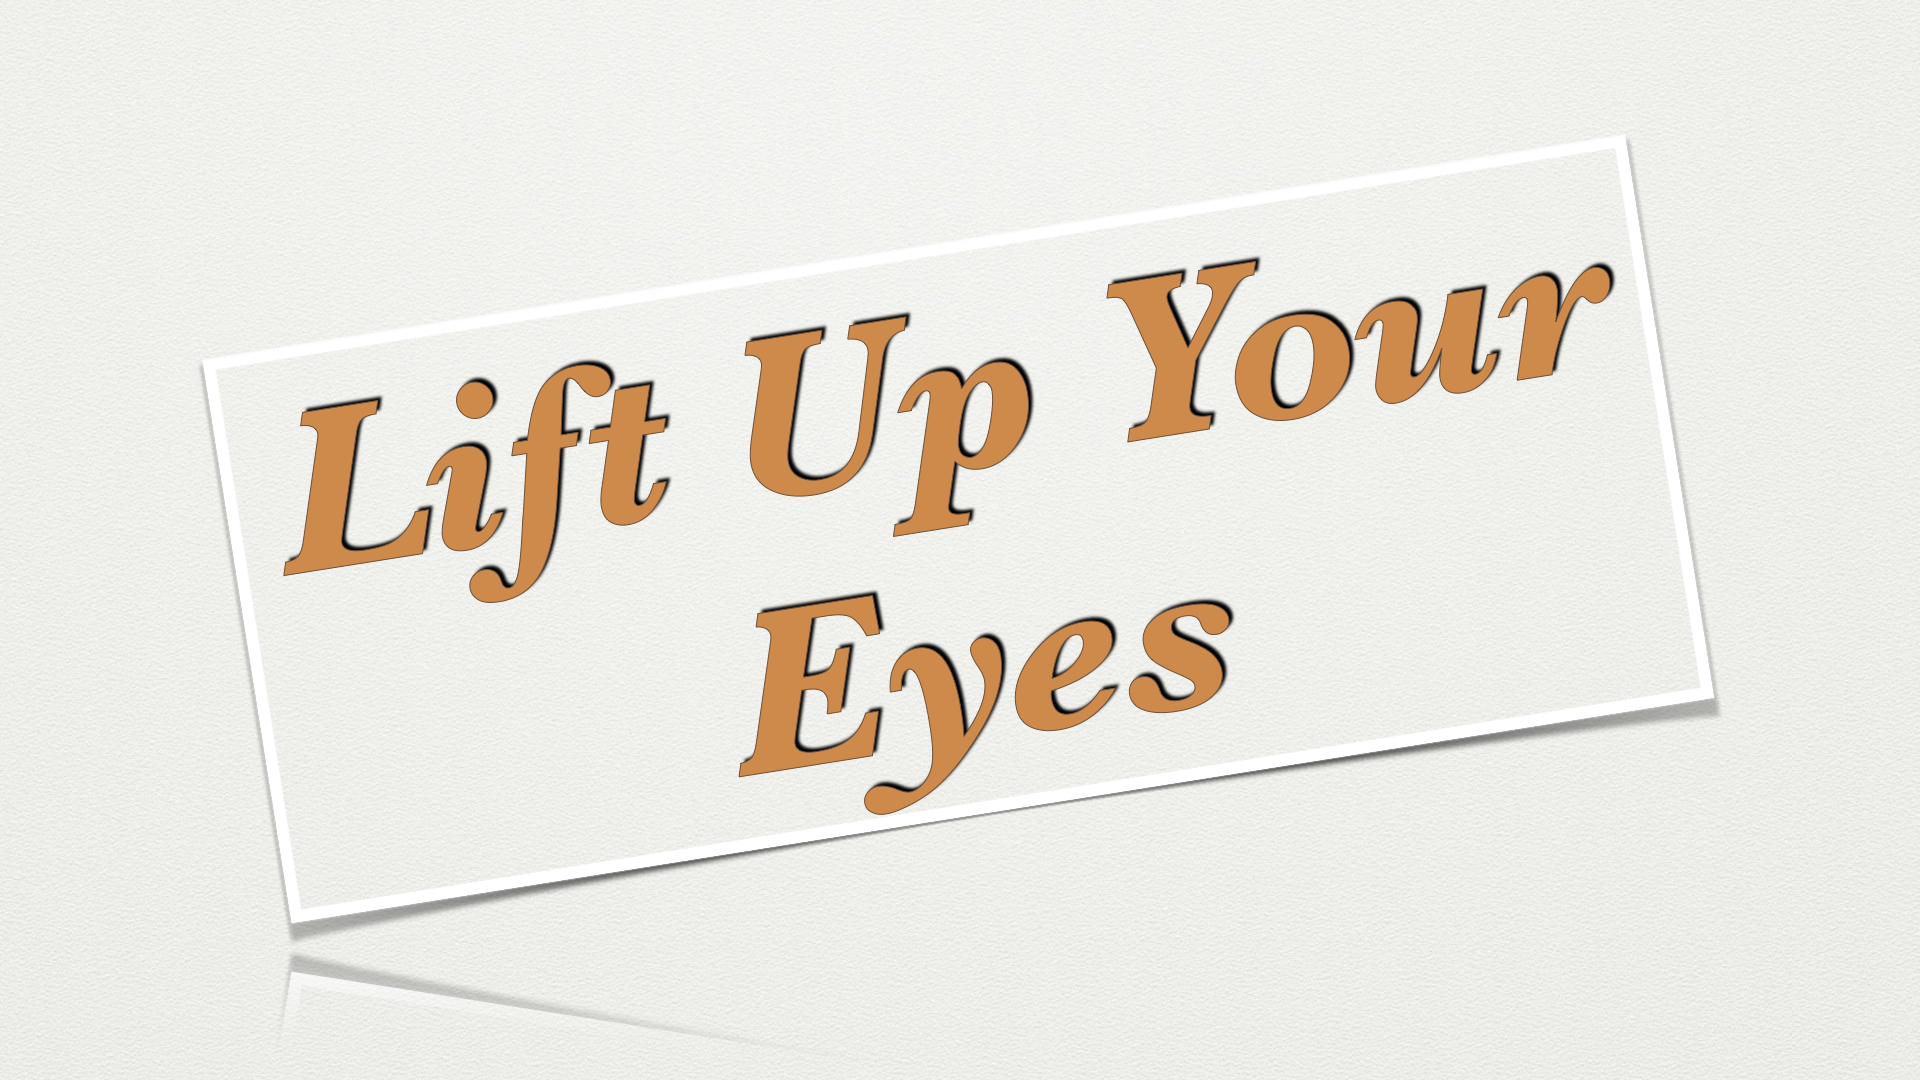 Lift Up Your Eyes 152020 82552 AM